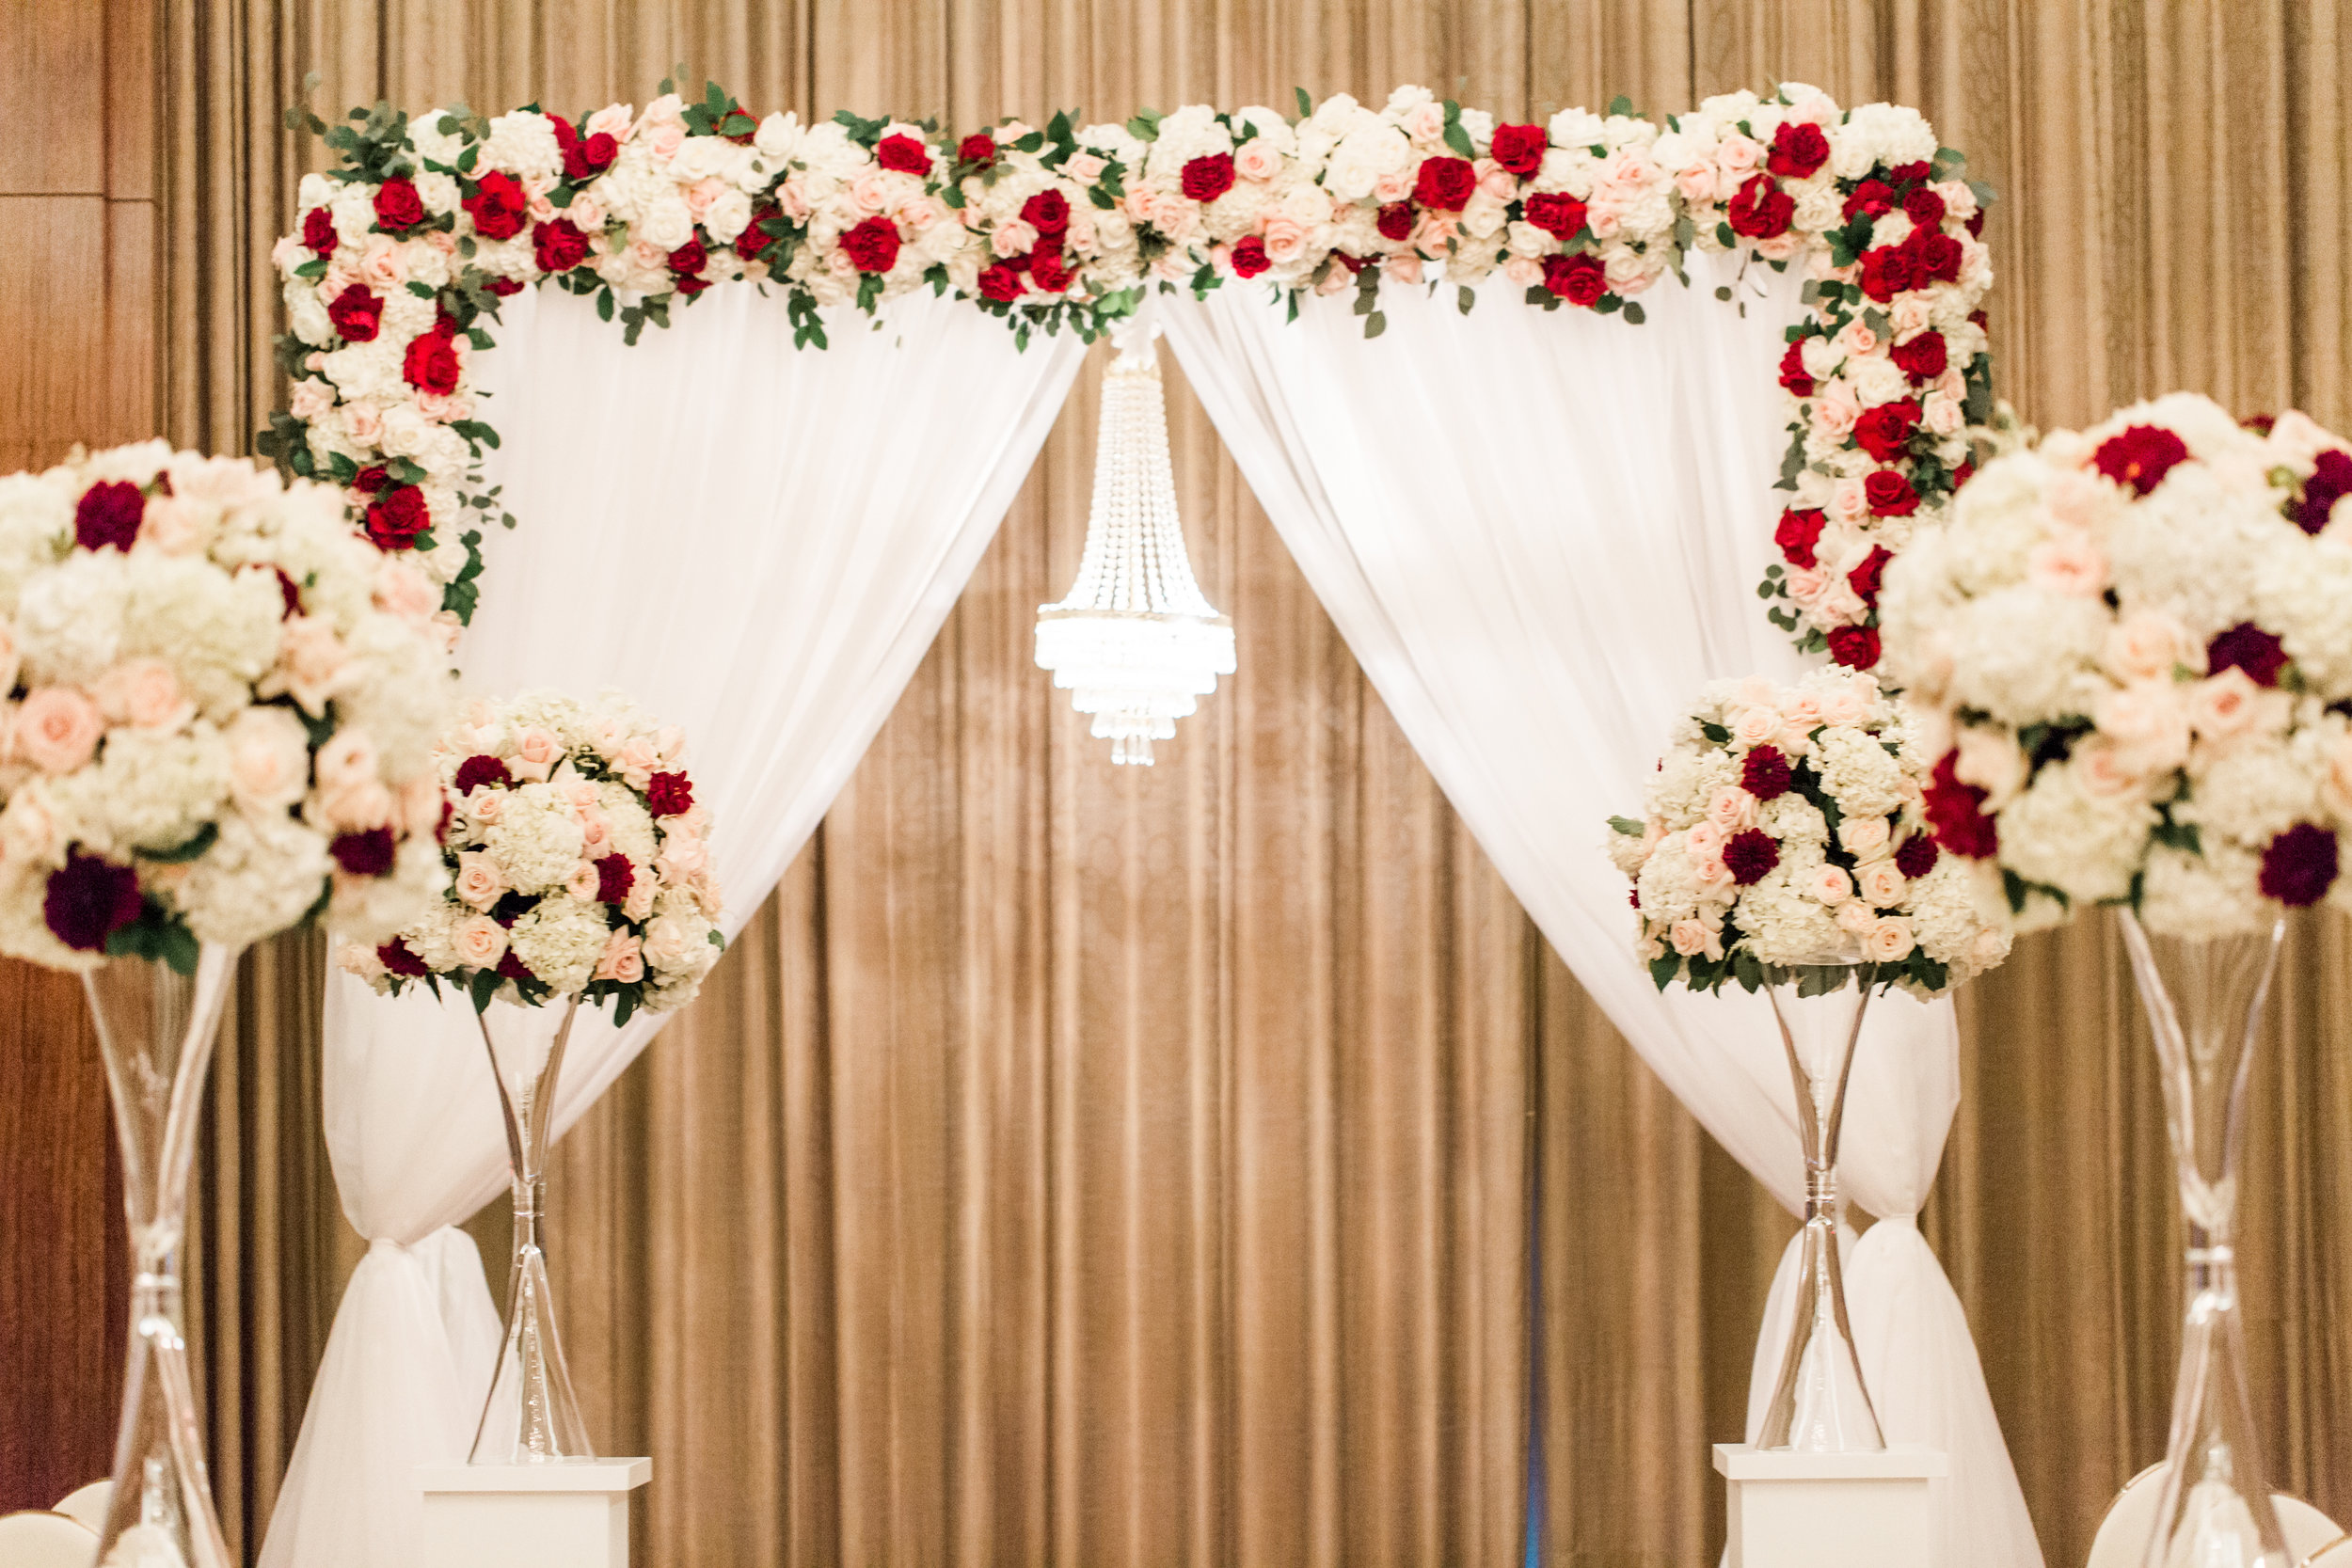 Wedding Ceremony Chuppah with dark red, blush, and white color scheme.Luxury wedding at the Mandarin Oriental with a color scheme of white, blush, and pops of wine red produced by Las Vegas Wedding Planner Andrea Eppolito with photos by Stephen Salazar Photography.